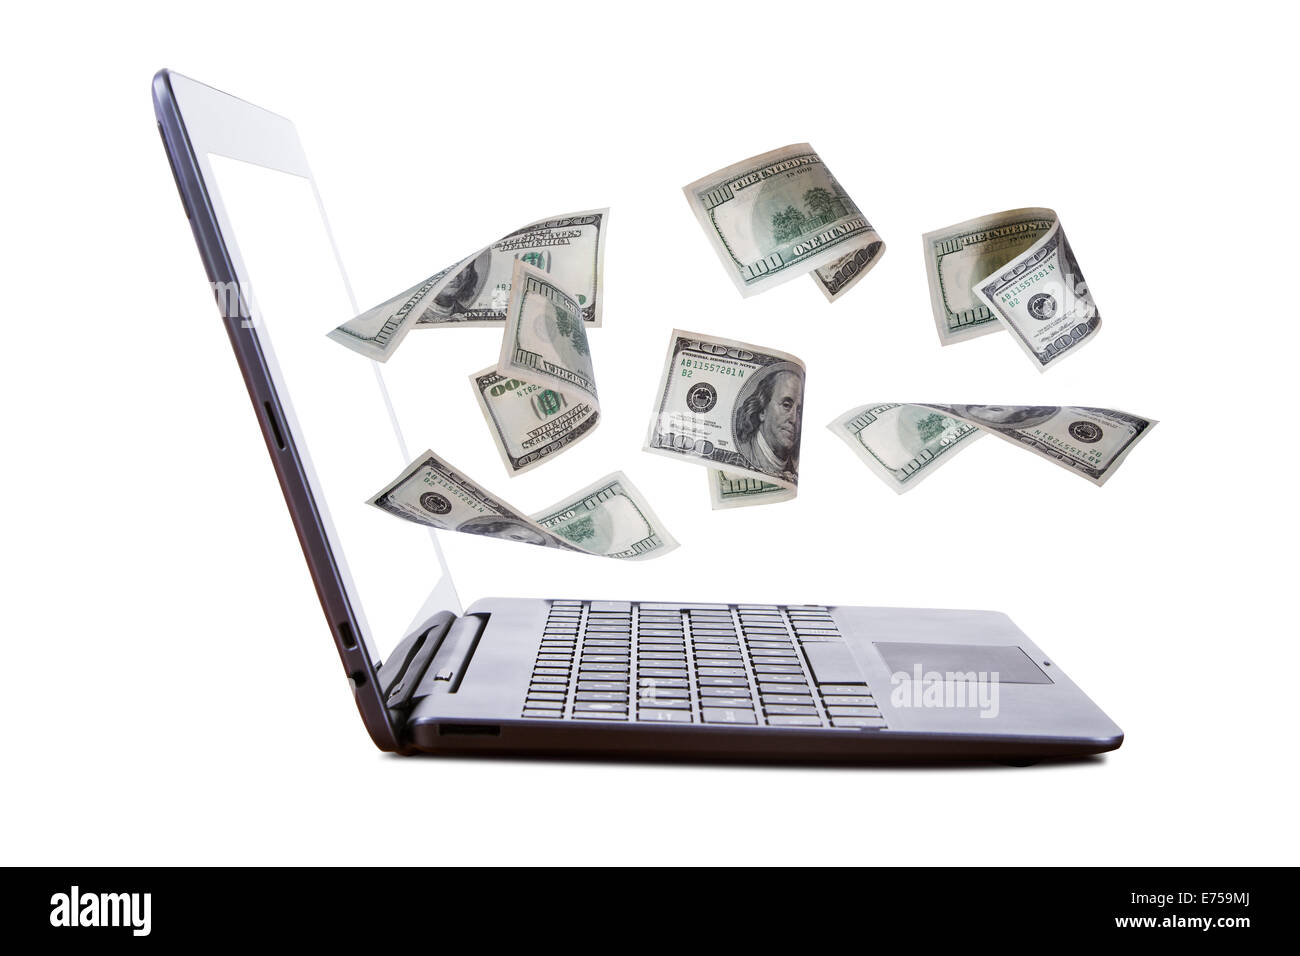 Finance and earning concept, one hundred dollar banknotes flying from laptop, internet, side view, isolated on white - Stock Image